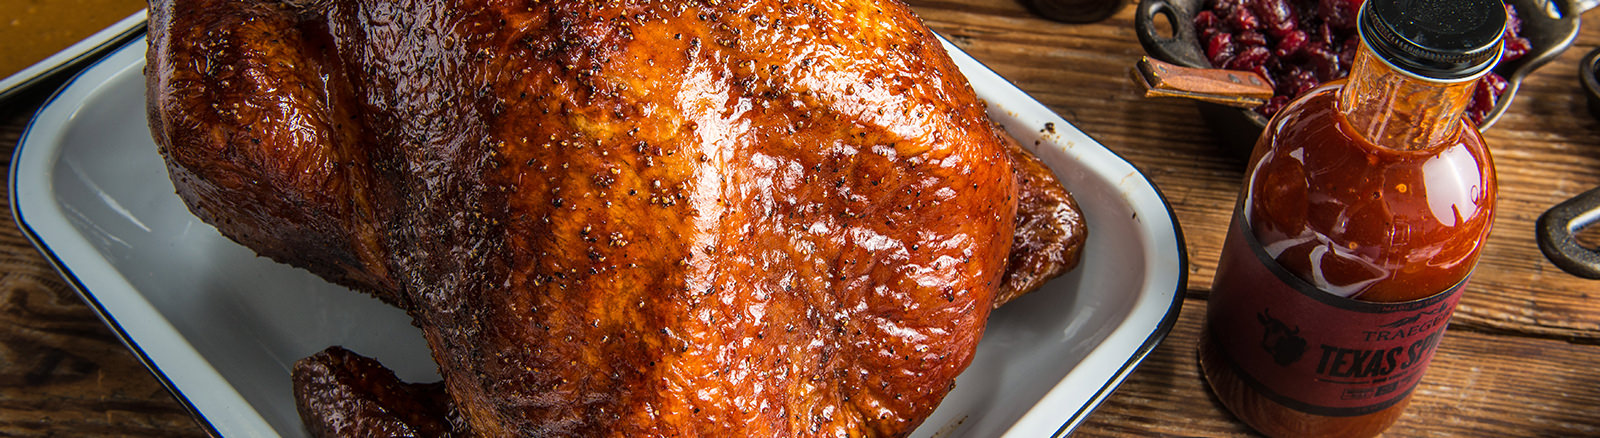 Traeger Recipe Thanksgiving BBQ Turkey Traeger Wood Pellet Grills